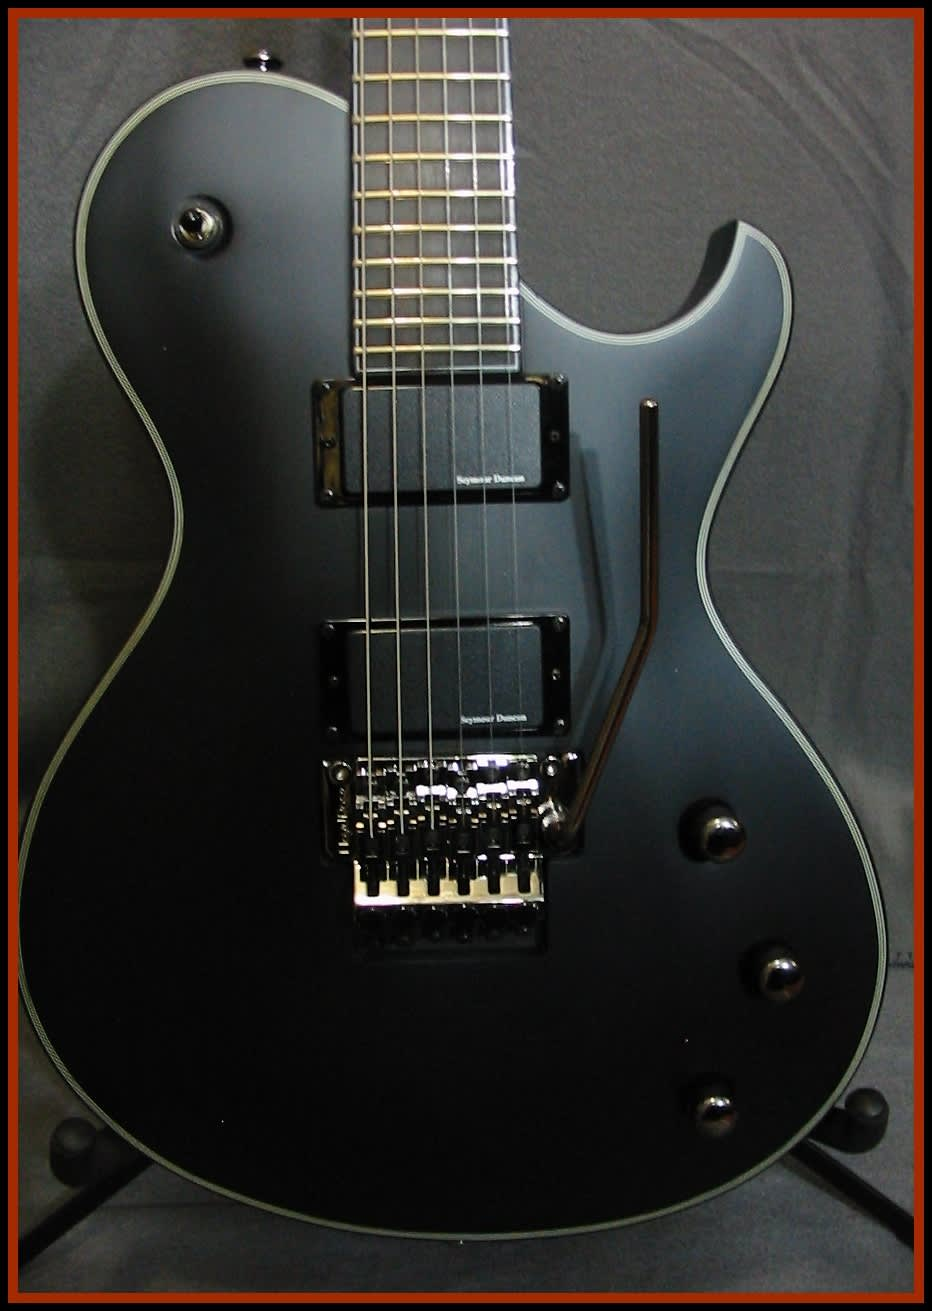 Blackjack sls solo-6